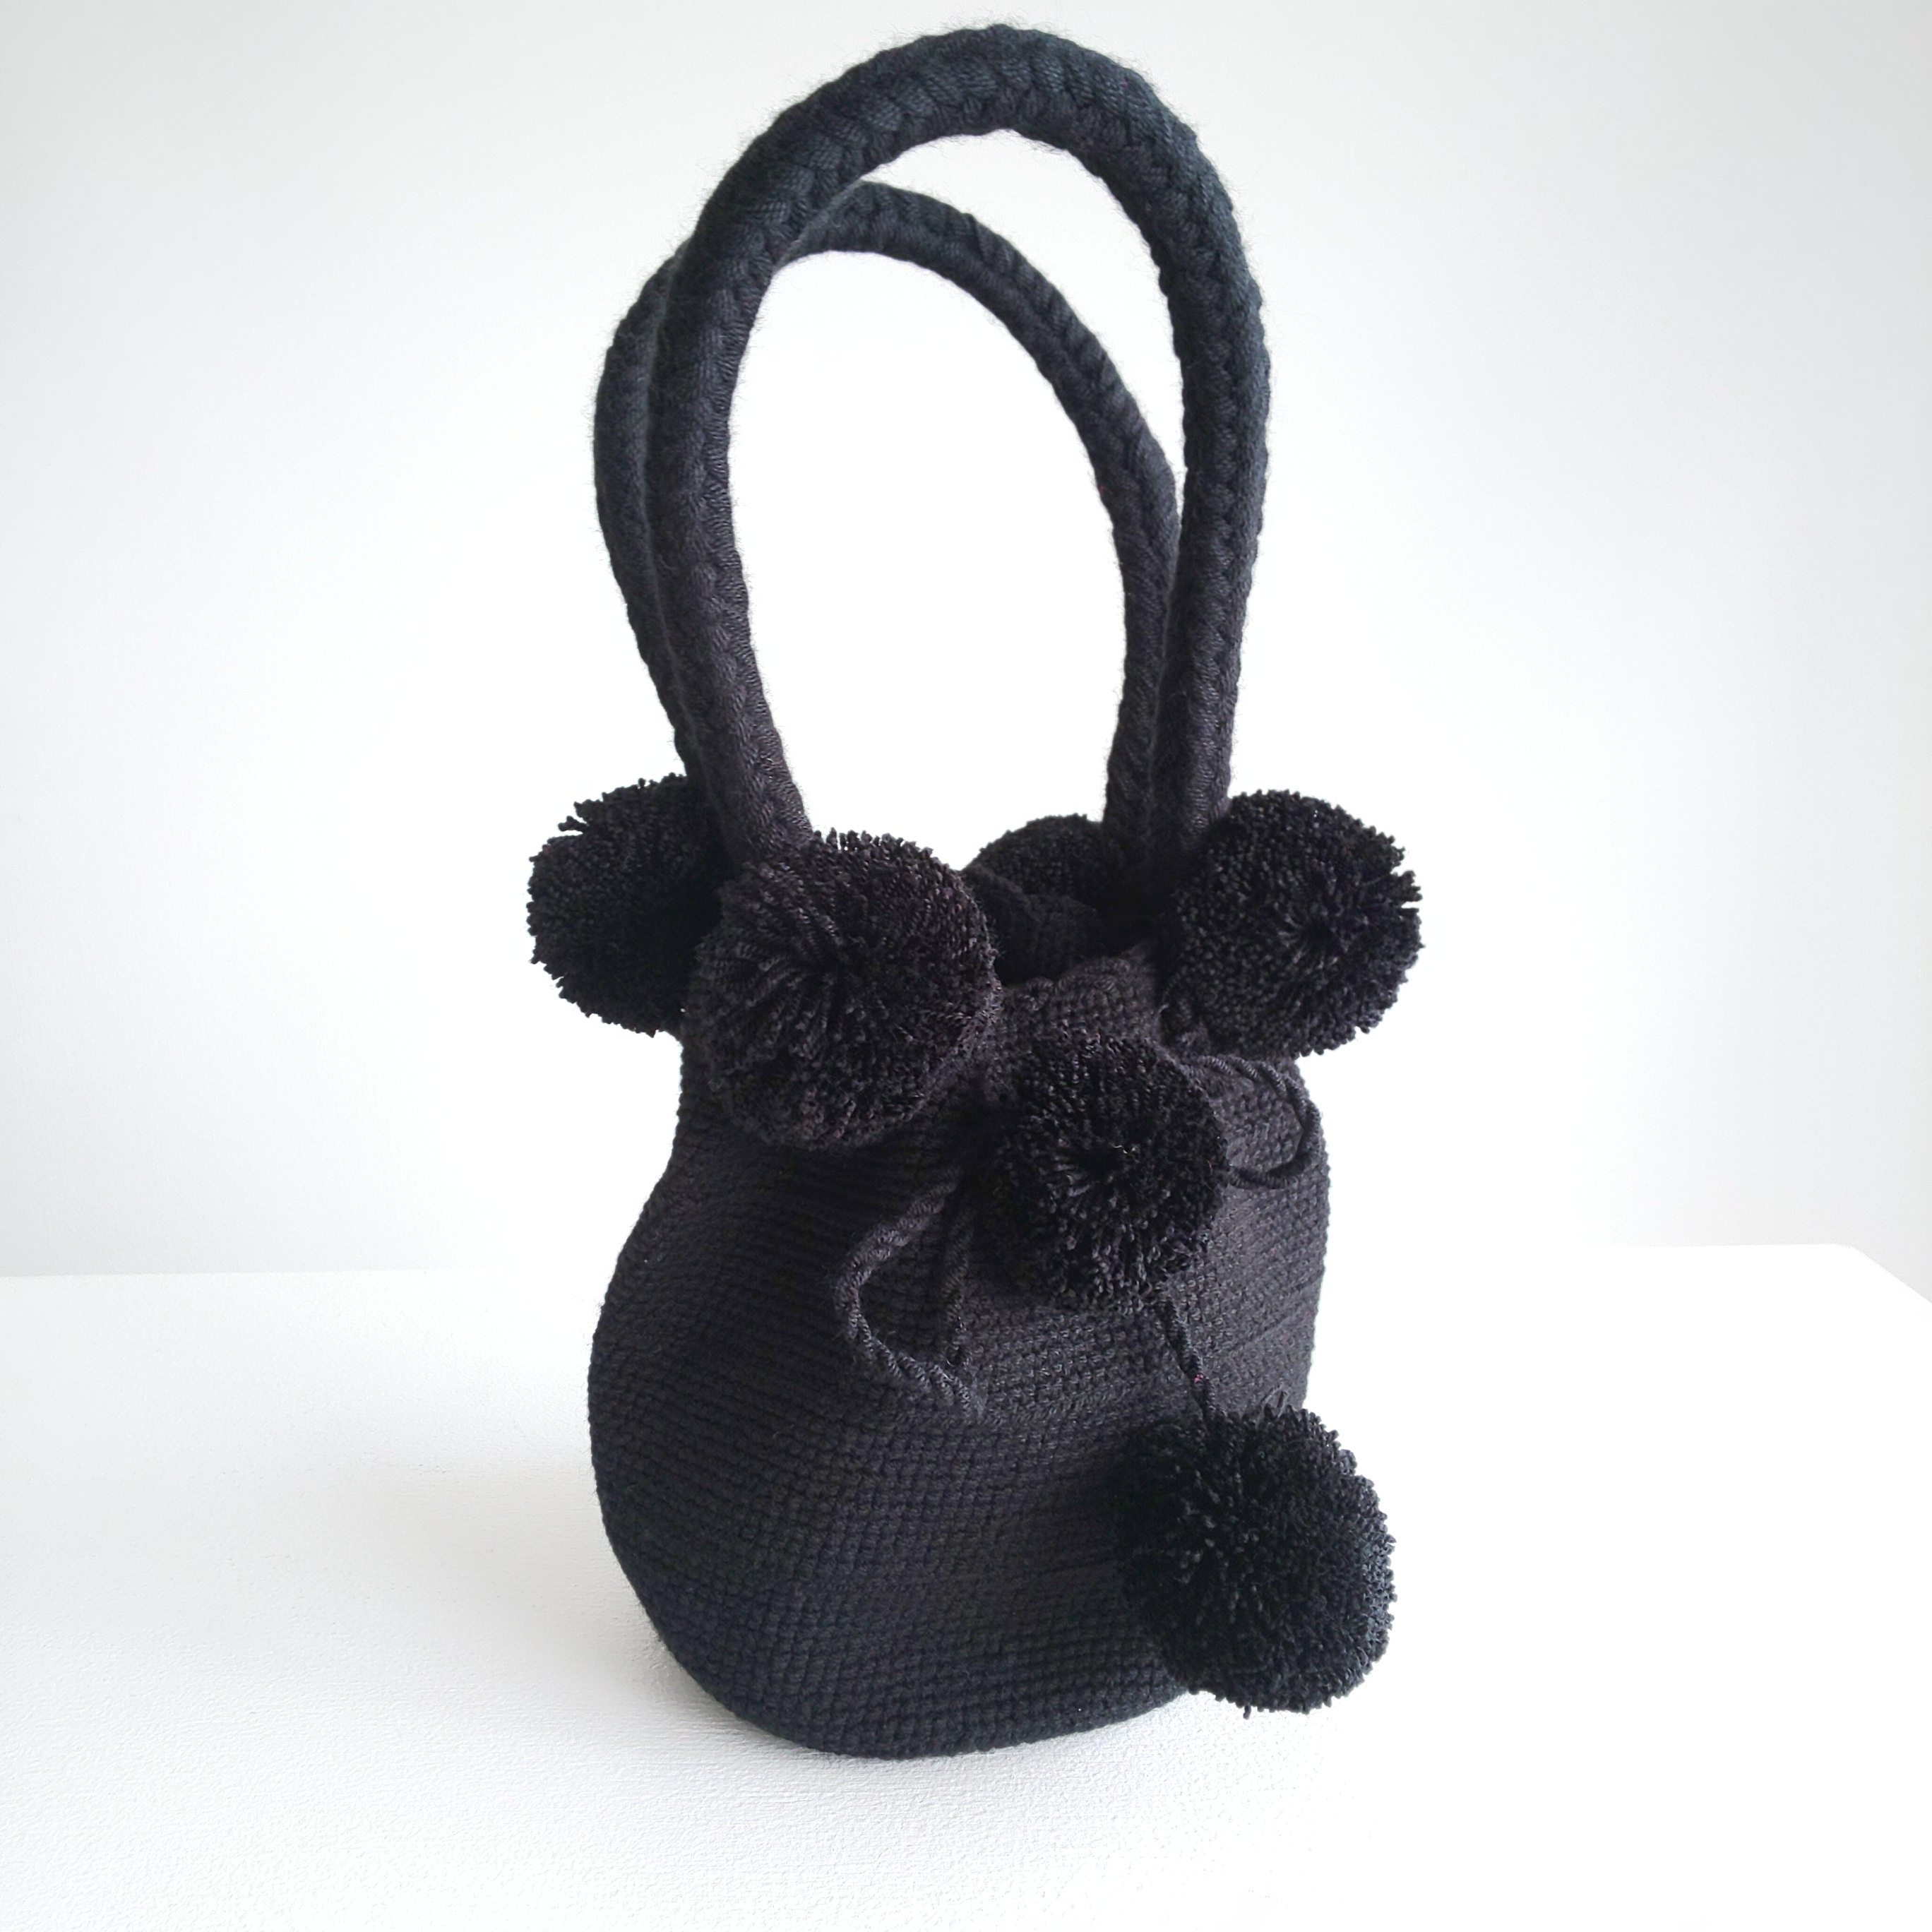 Handmade pom poms bag -black